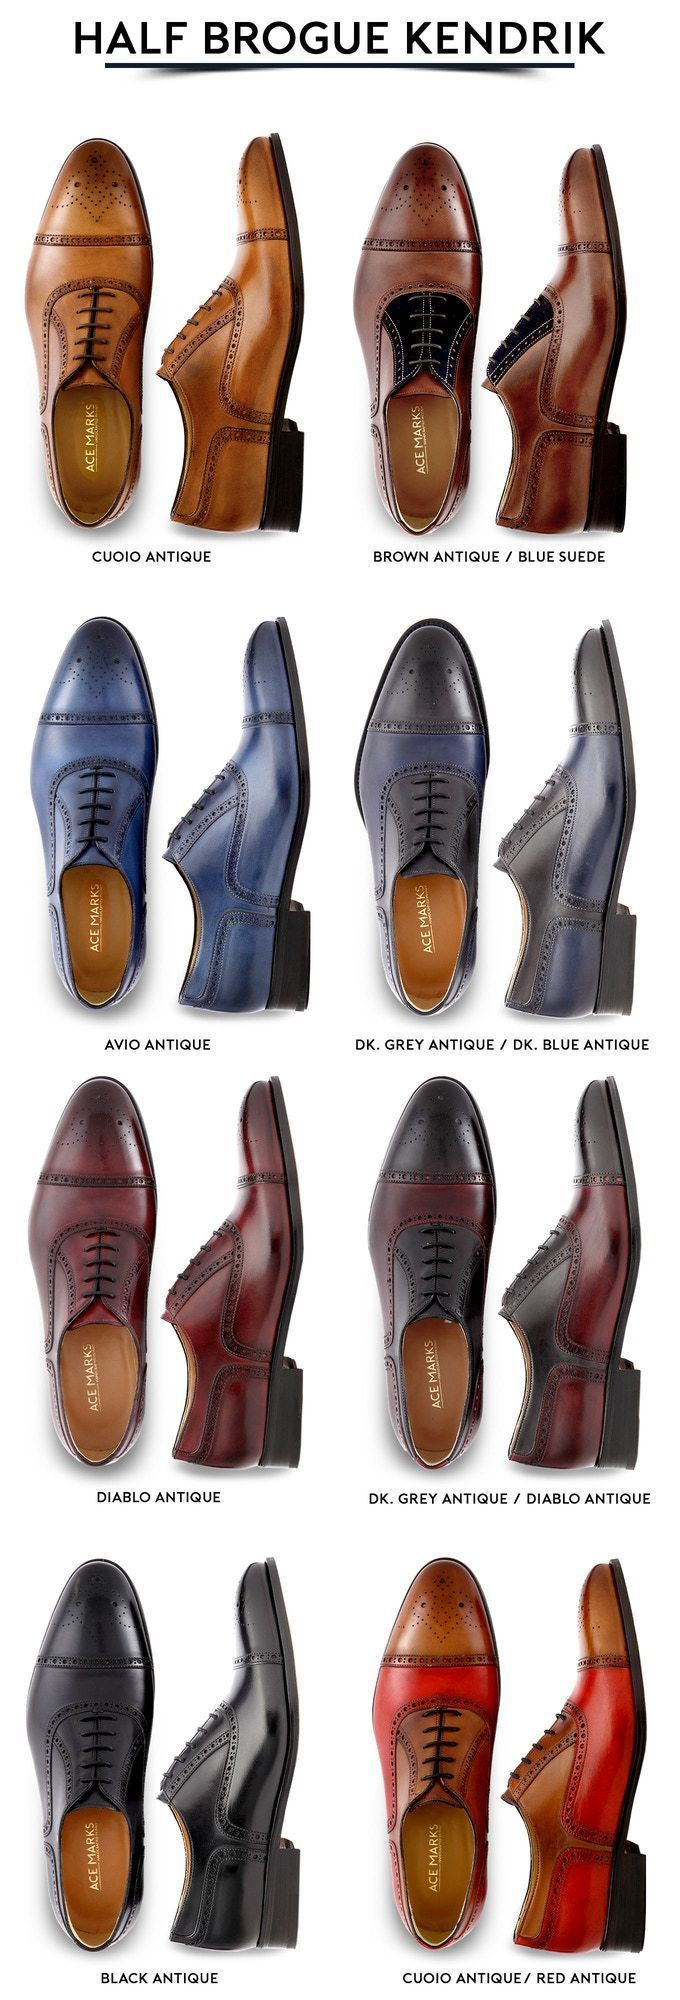 The first bold, comfortable, & affordable handcrafted Italian leather shoe with a buyback option that strengthens communities. #luxuryshoes